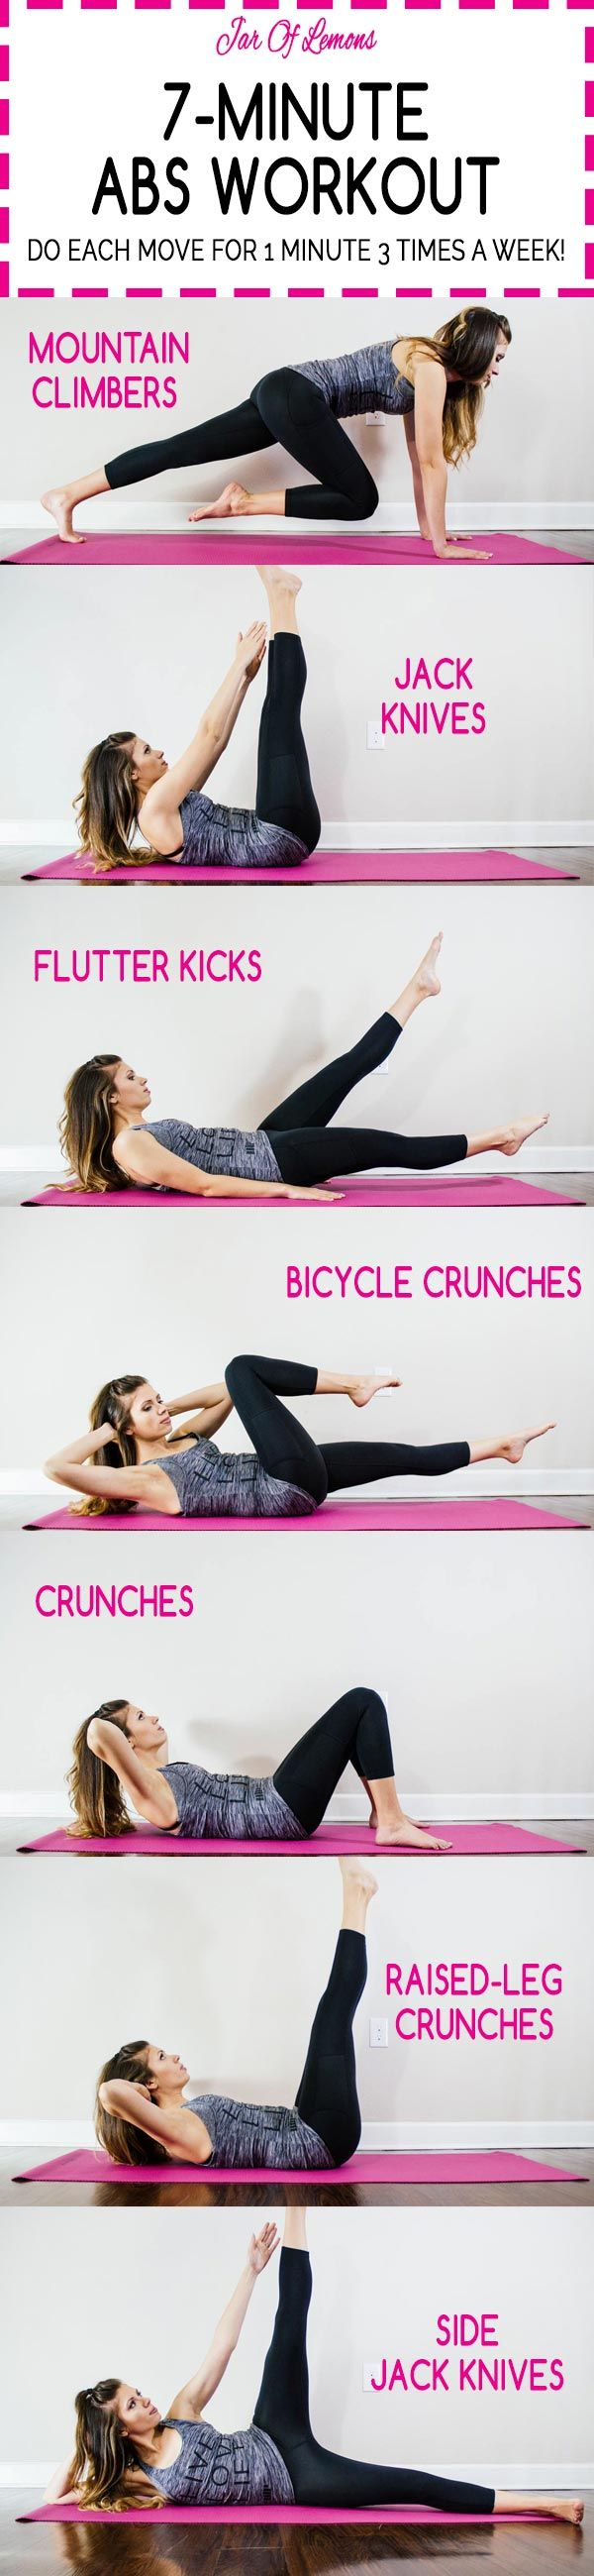 7-Minute Abs Workout! Do each move for 1 minute. 7 minutes, just 3 times a week!